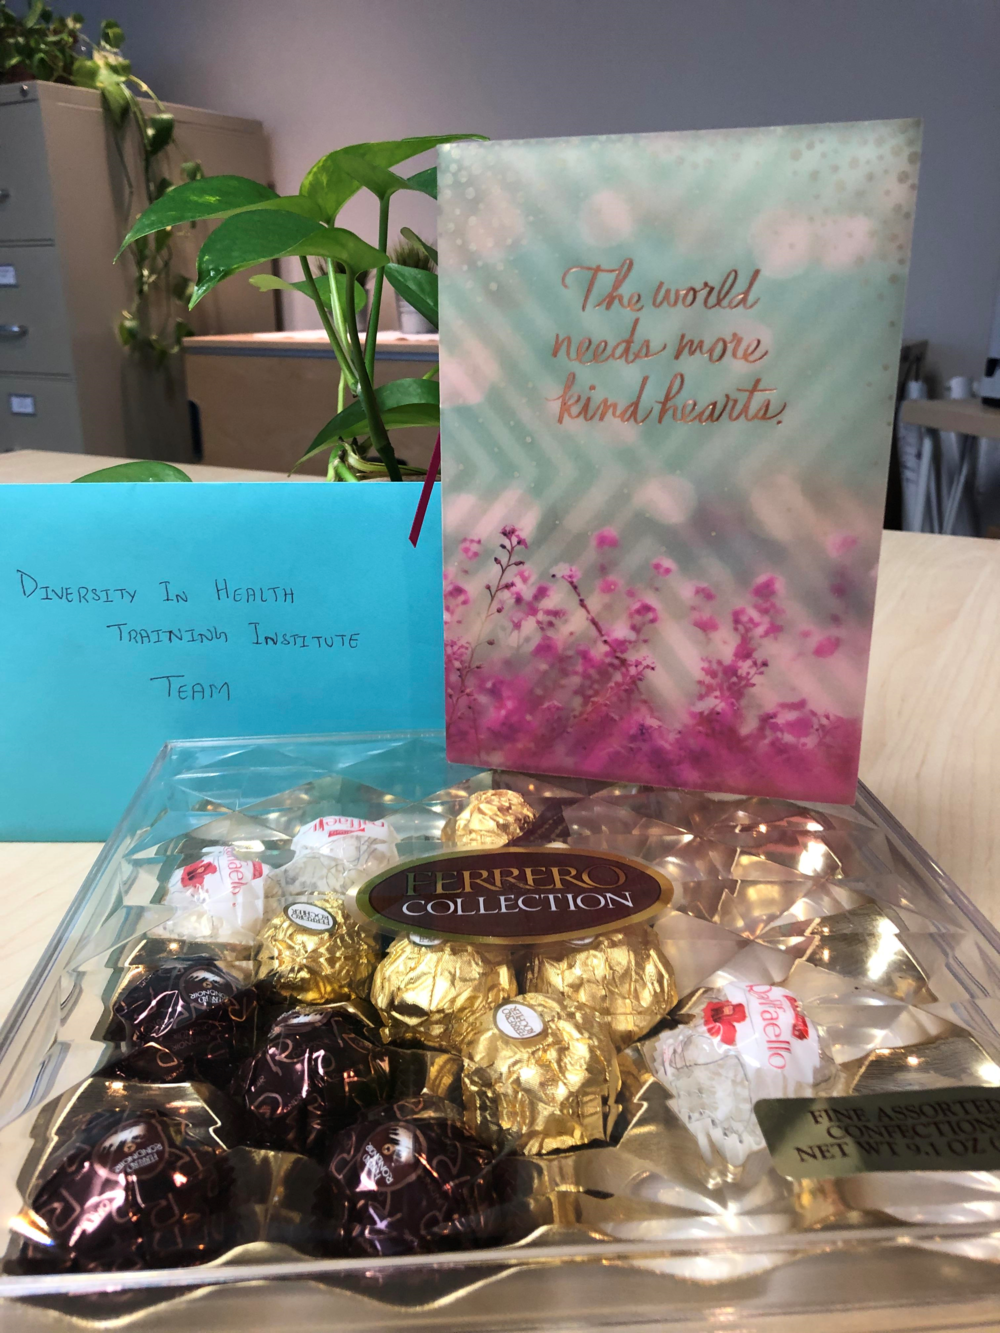 Thank you from DHTI Participant - DHTI is so appreciative and grateful for our participants who excel and reach their healthcare goals! Thank you Shrijana who completed the Nursing Program at Dominican University, passed the NCLEX exam and gifted us with her appreciation!